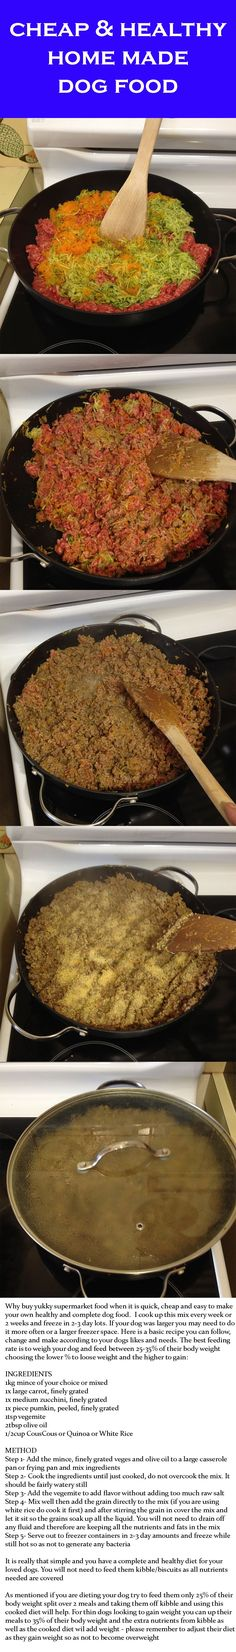 Quick, cheap, easy and healthy home made dog food...